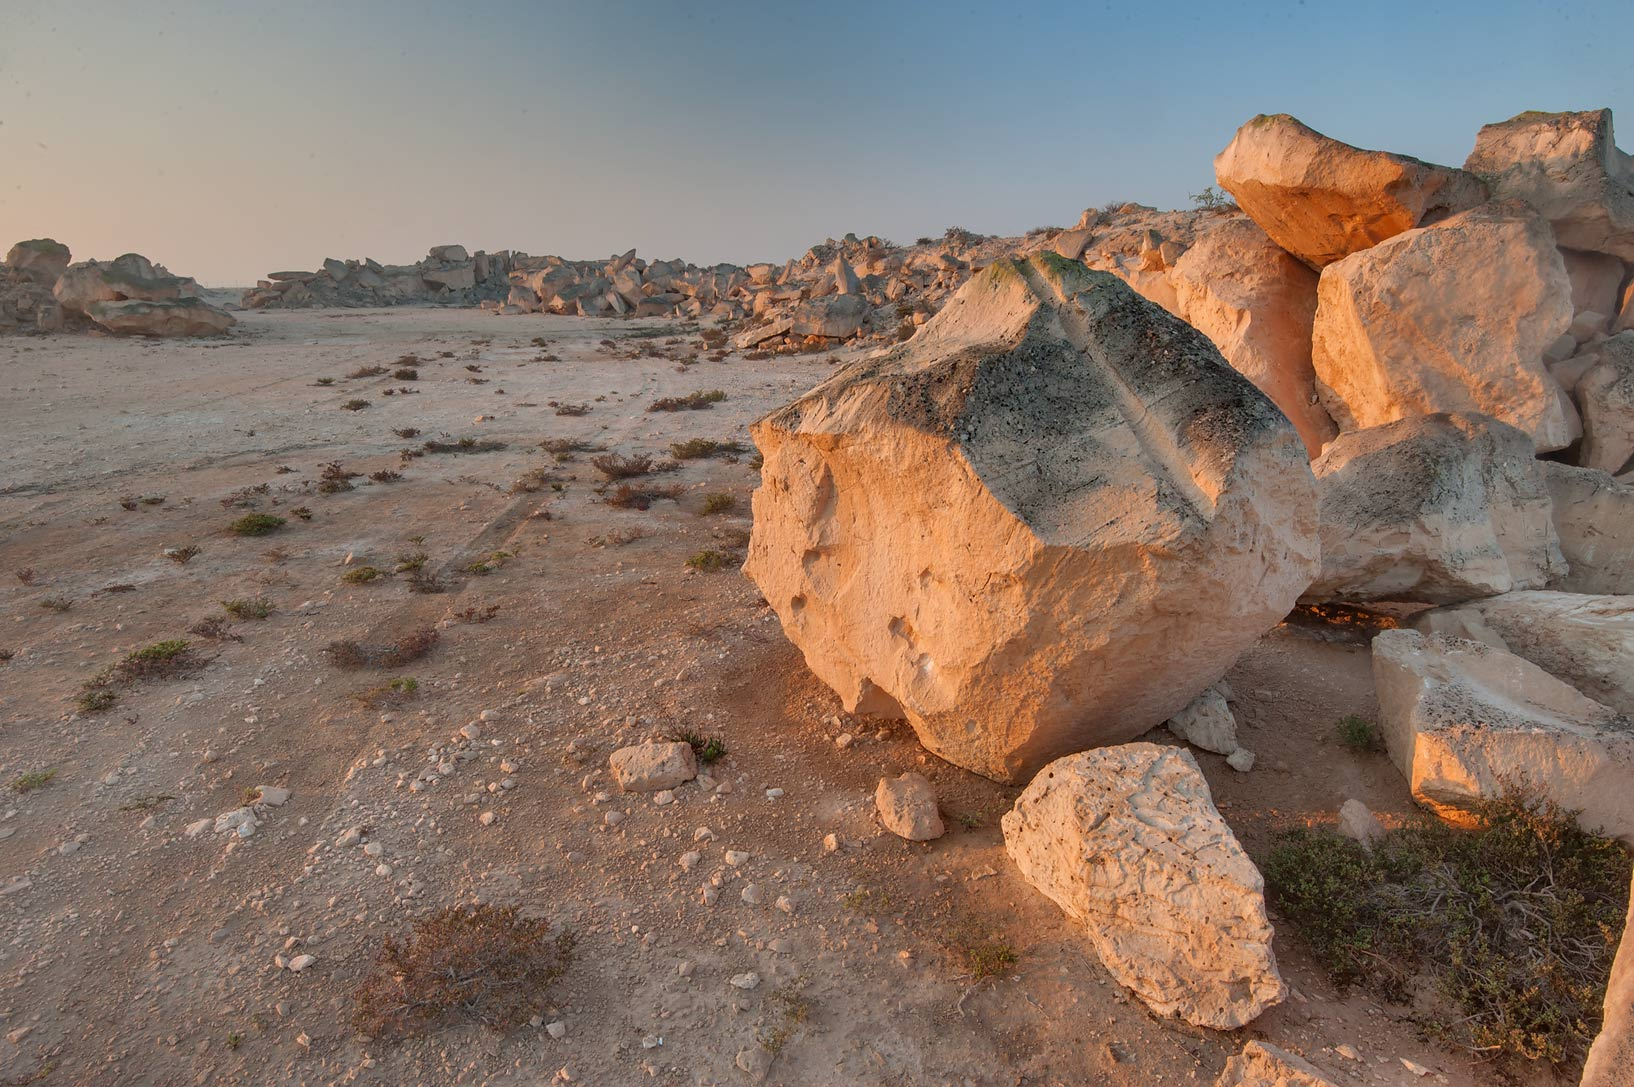 Sandstone quarry in Jabal Al Jassasiya site, on north-eastern coast. Qatar